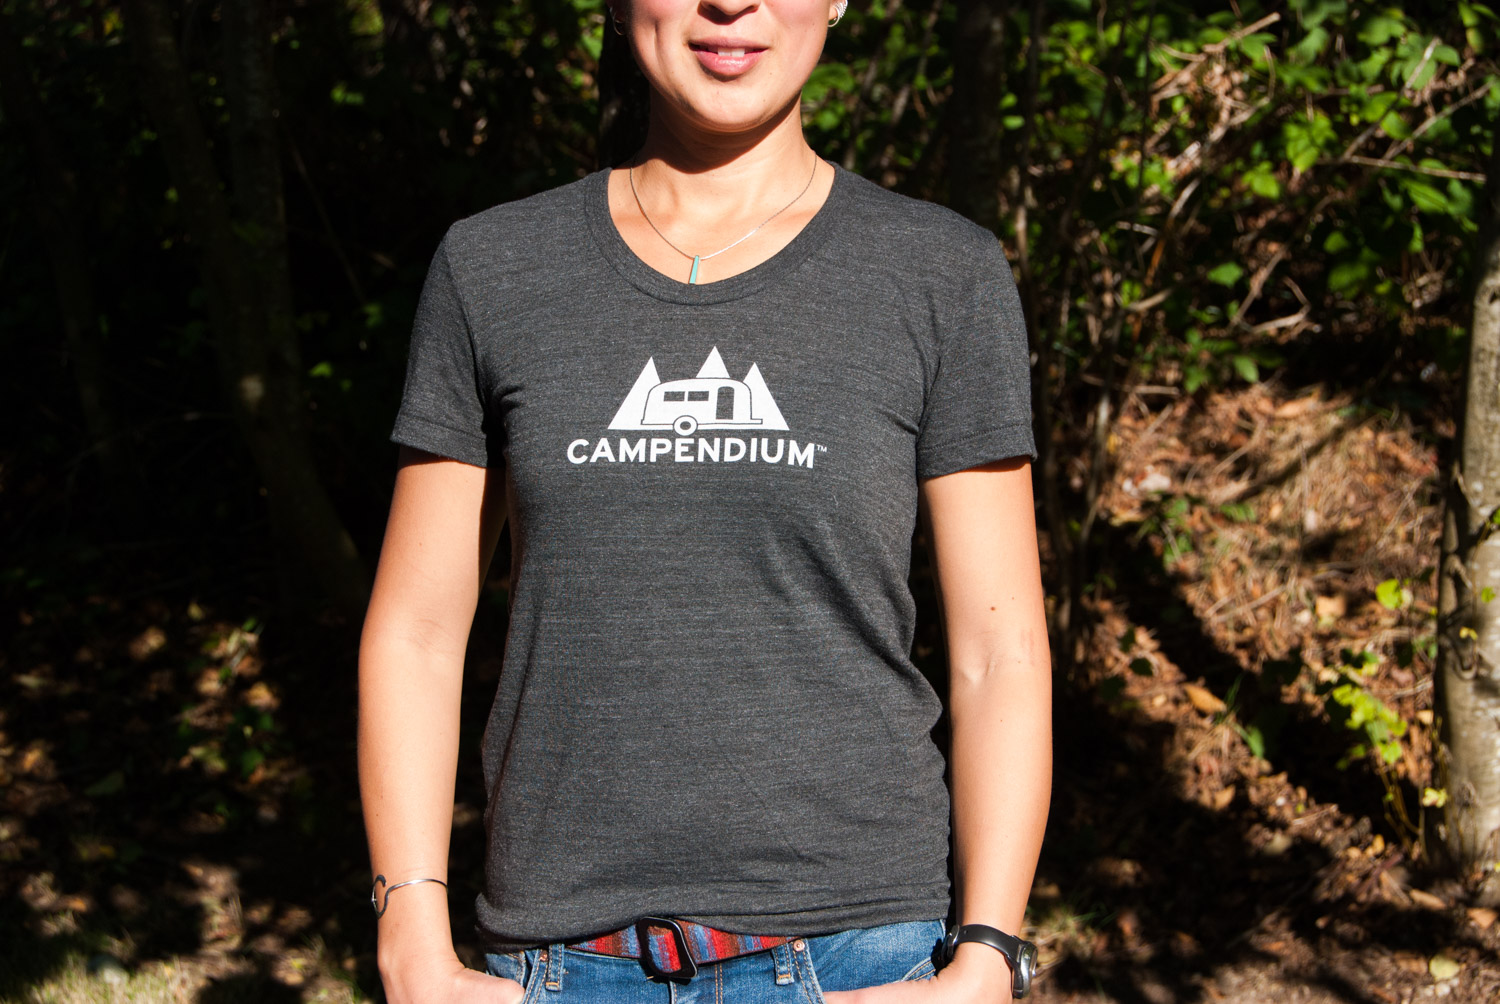 Campendium shirts are available during their fundraiser.